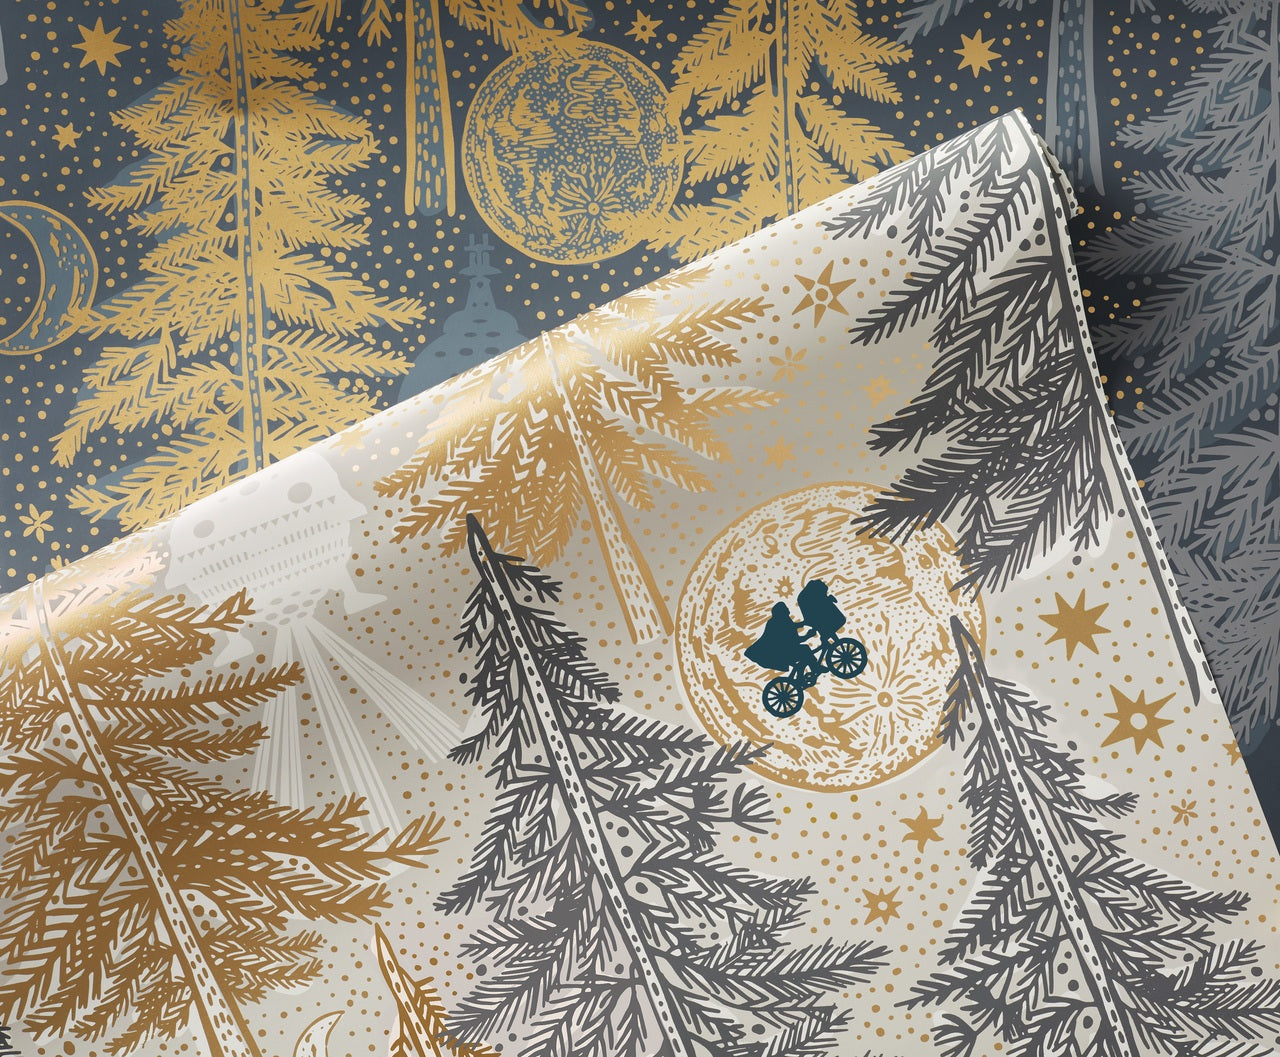 Be Good pattern inspired by E.T. the Extra Terrestrial   Universal + Hygge & West wallpaper and shower curtain collection